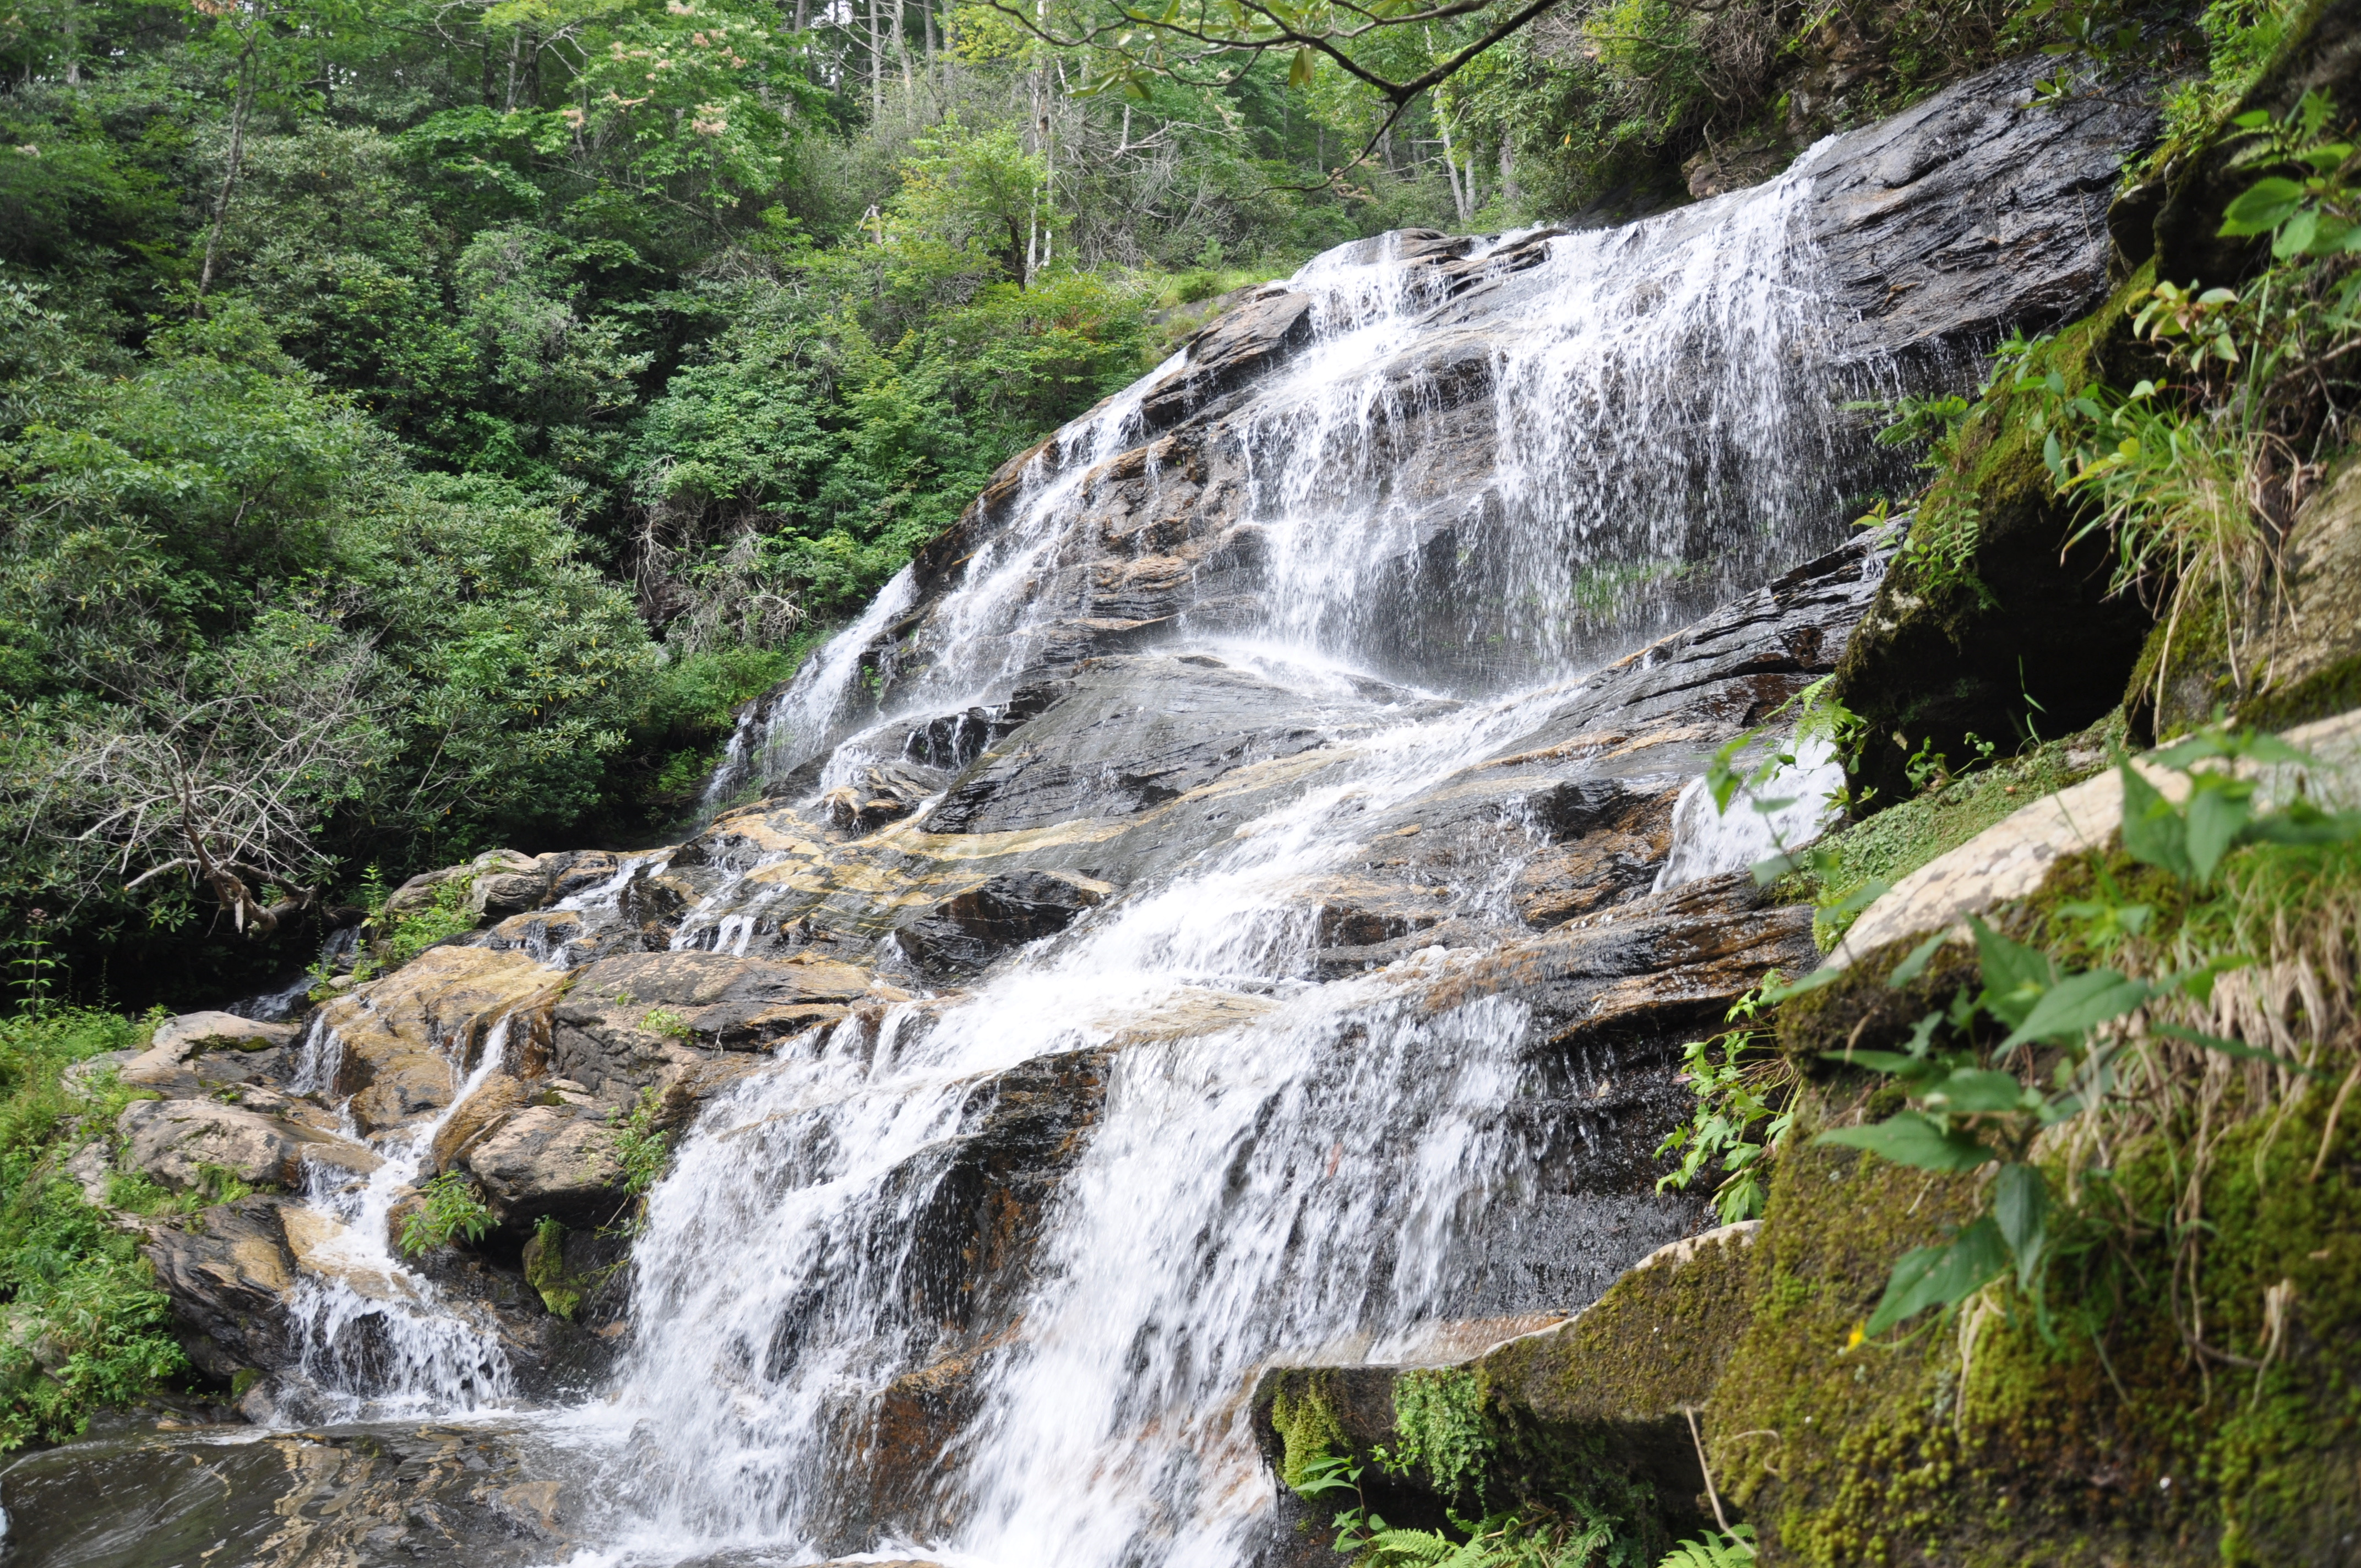 Glen Falls near Highlands, North Carolina